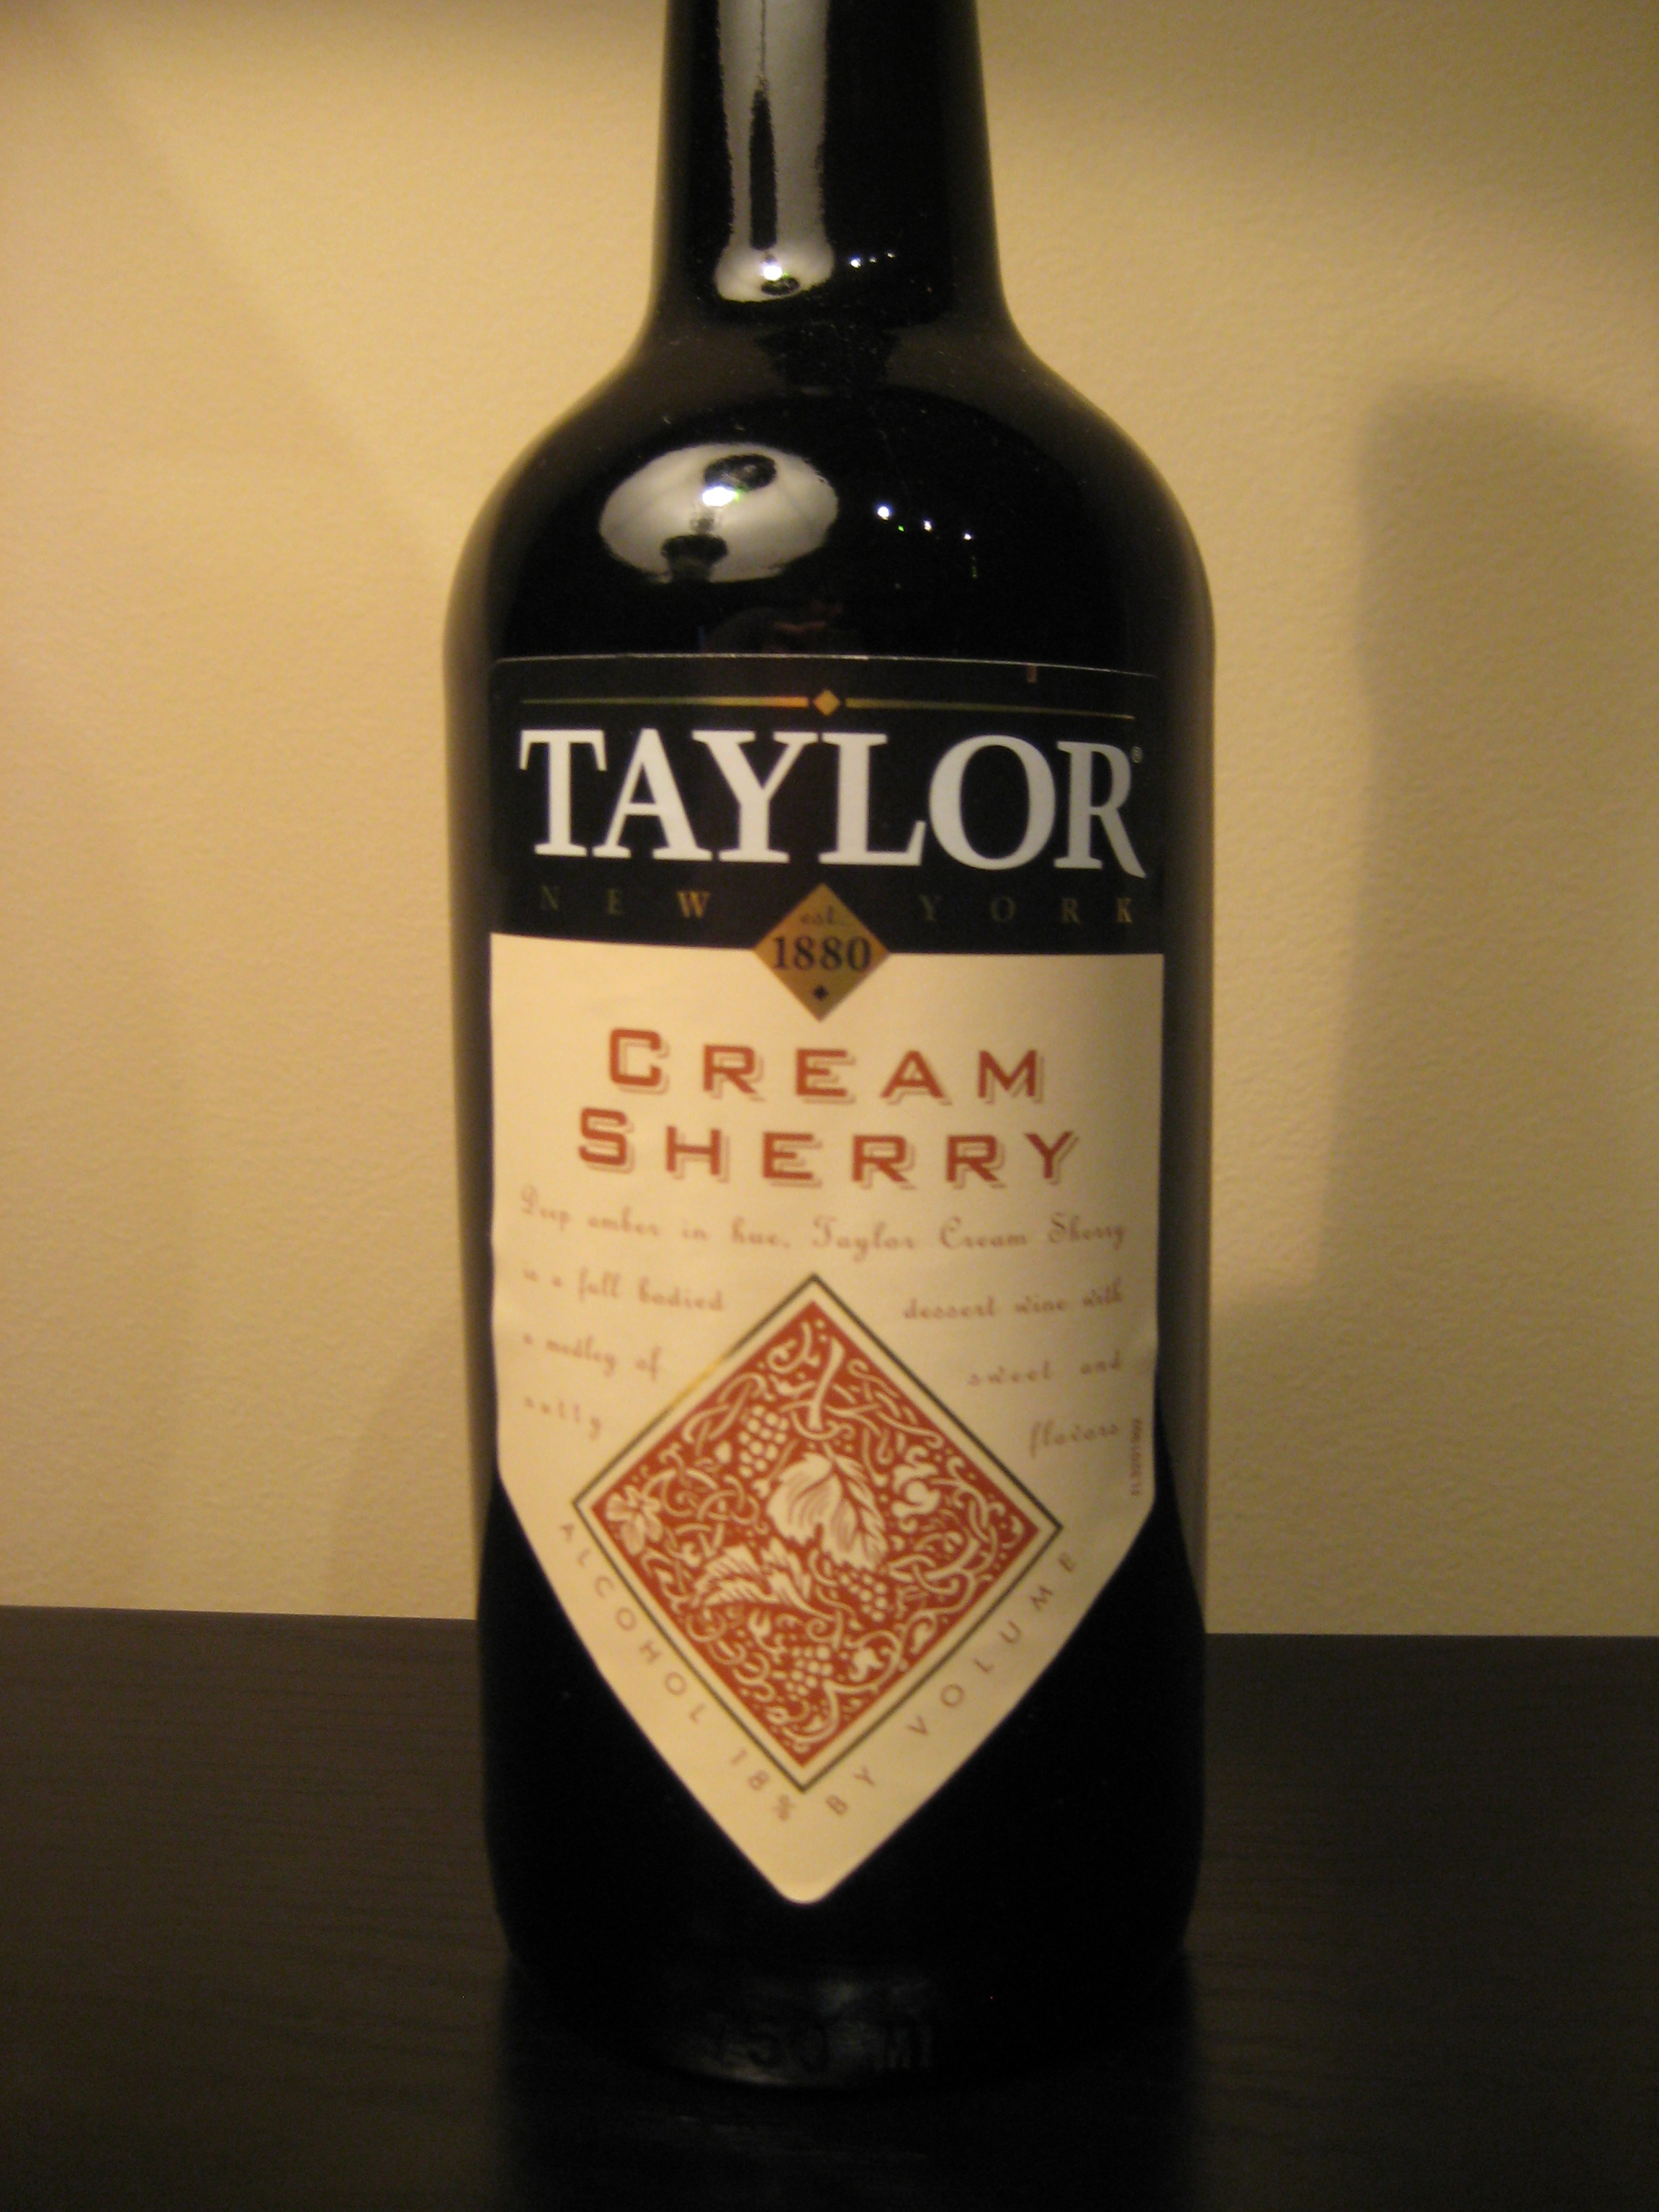 Taylor Cream Sherry First Pour Wine